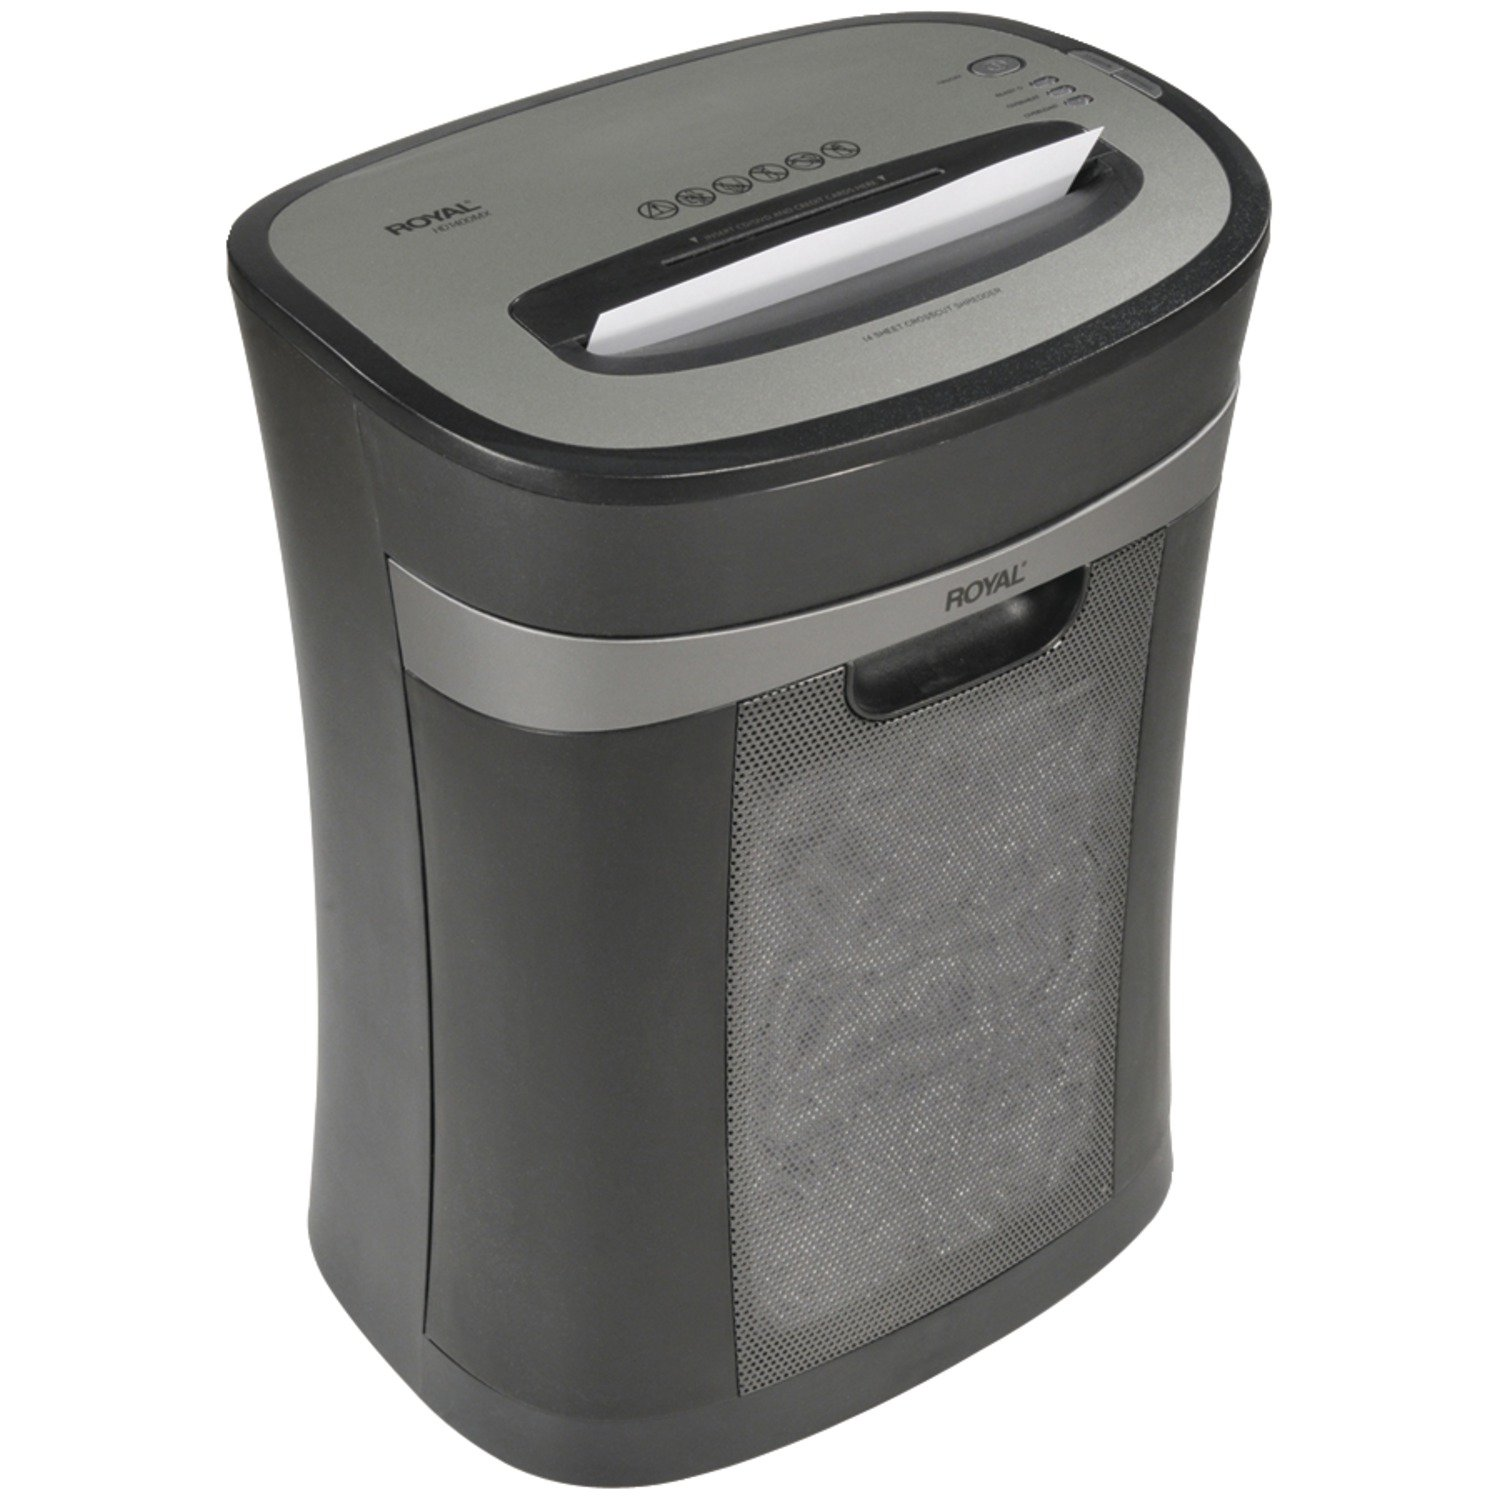 Royal HD1400MX 14-sheet 60-minute Run-time Cross-cut Shredder by Royal